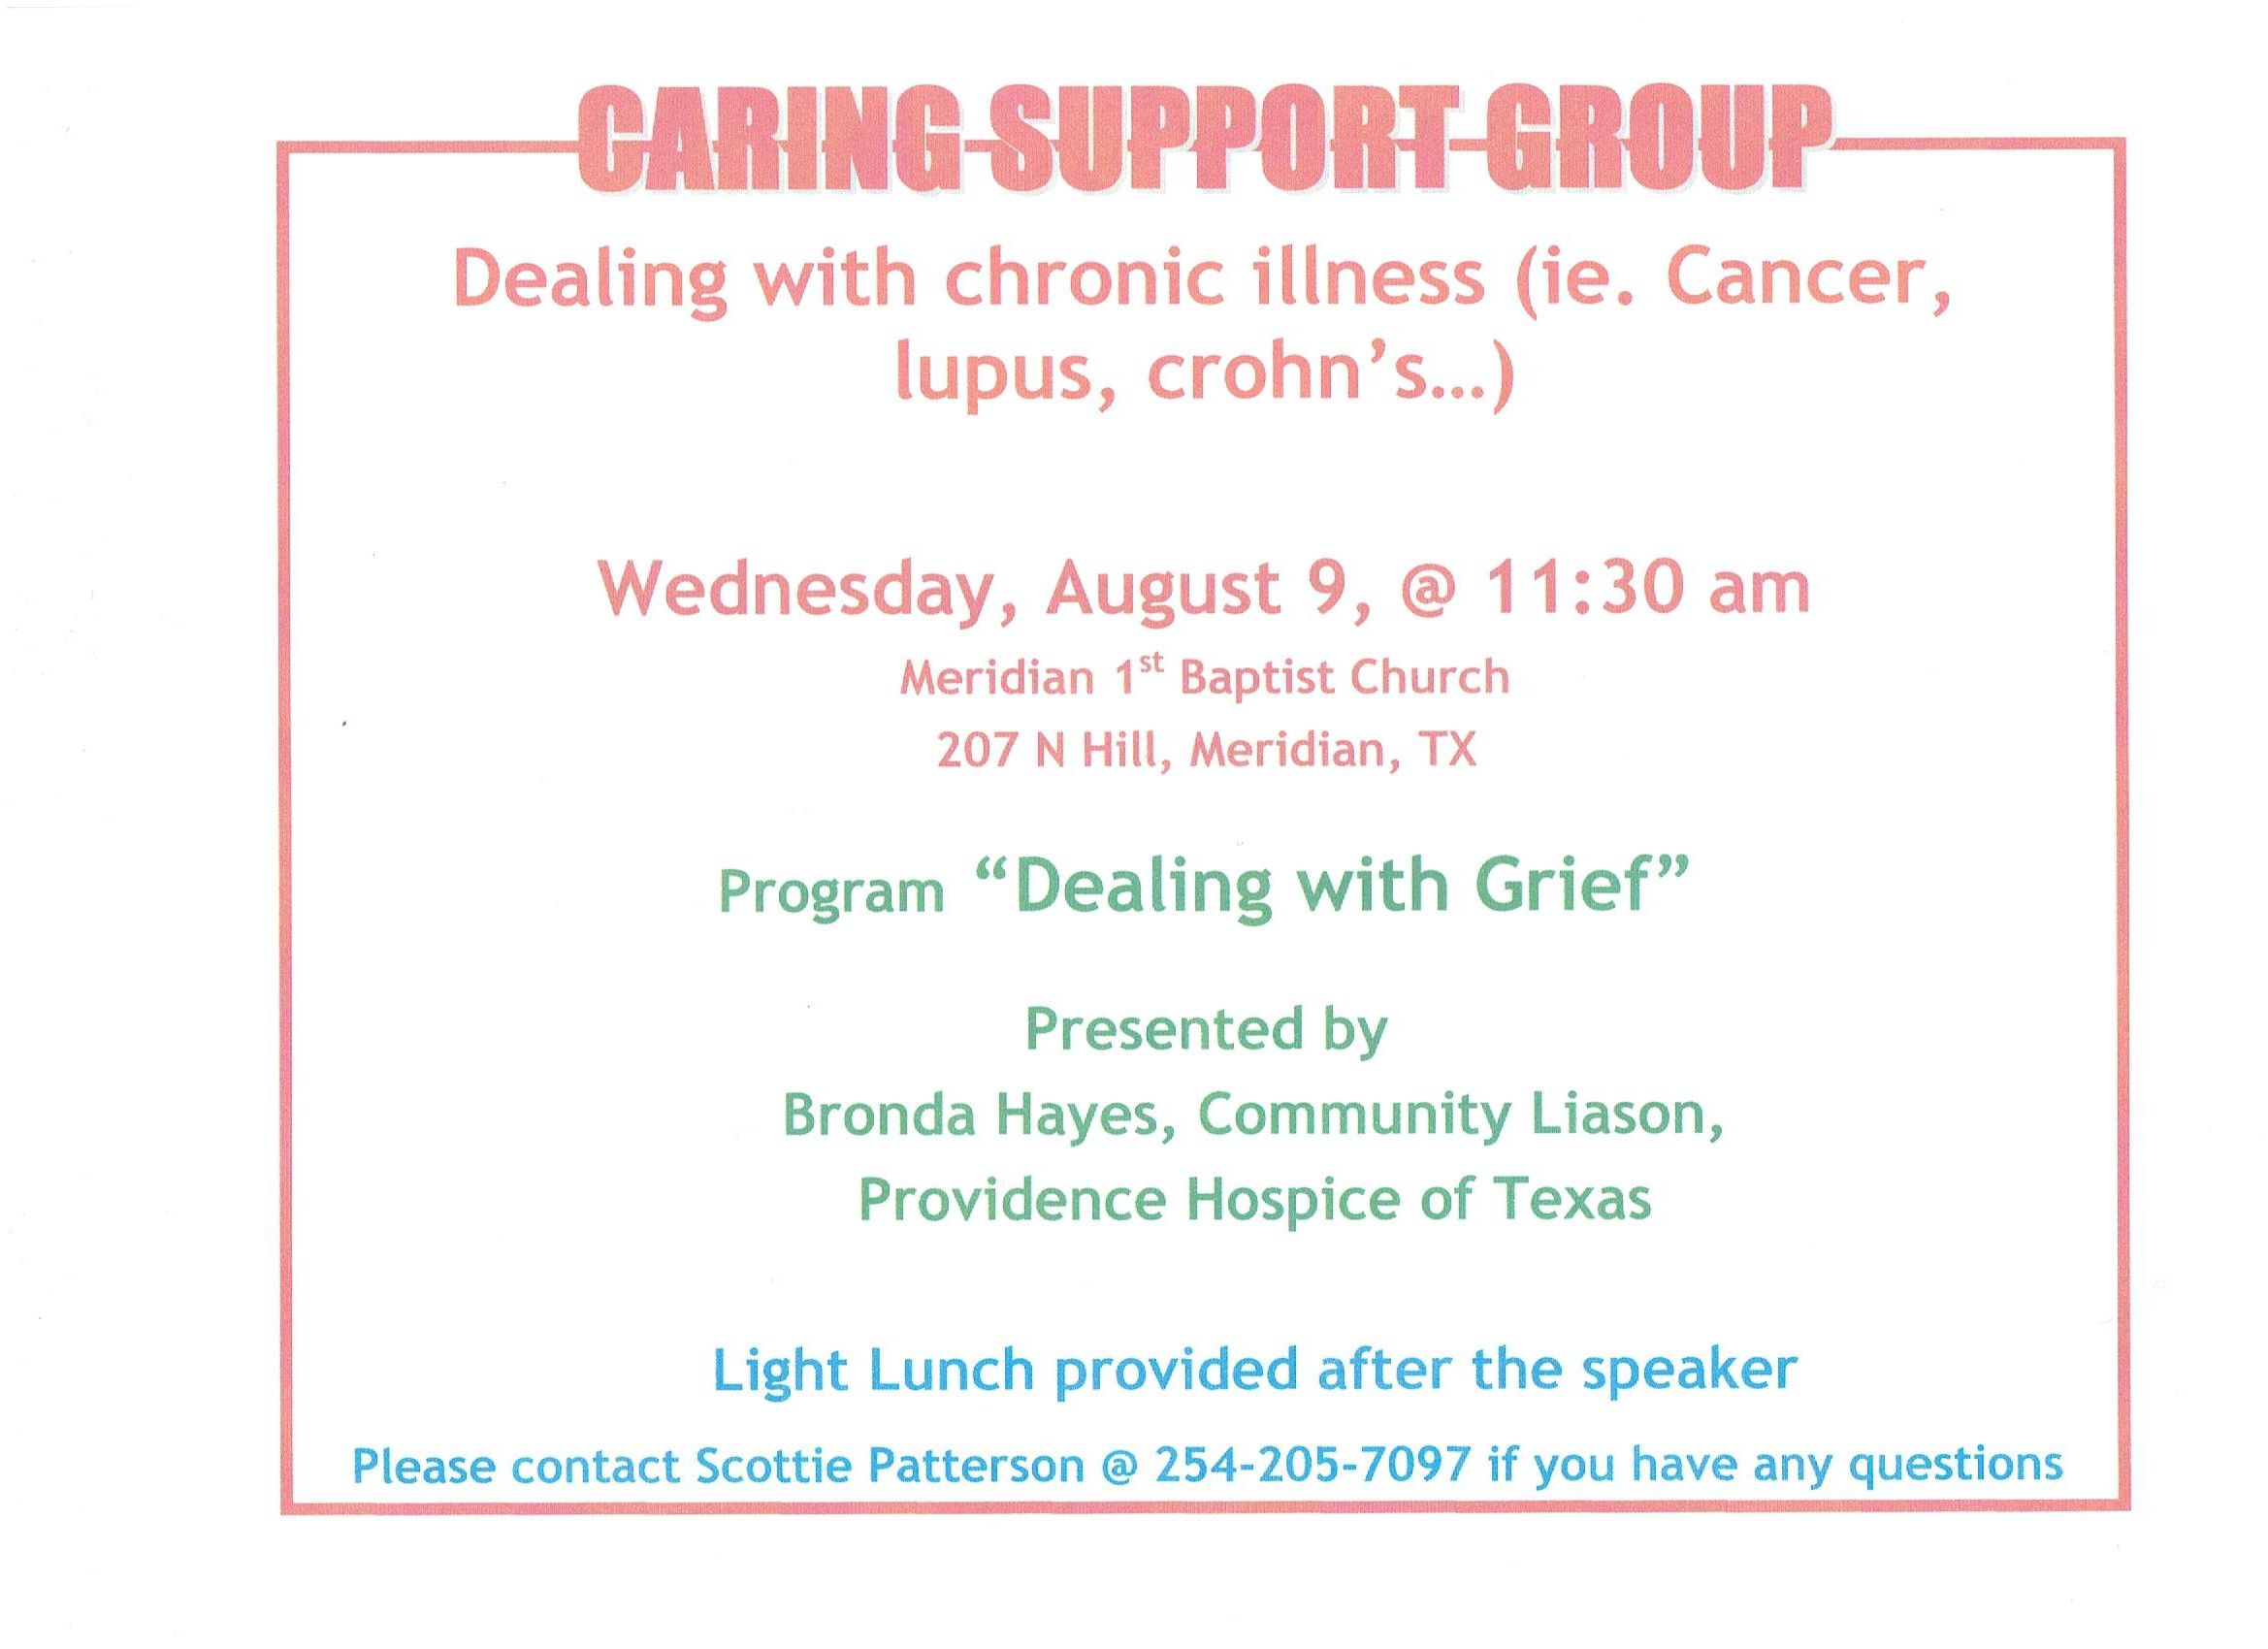 Caring Support Group